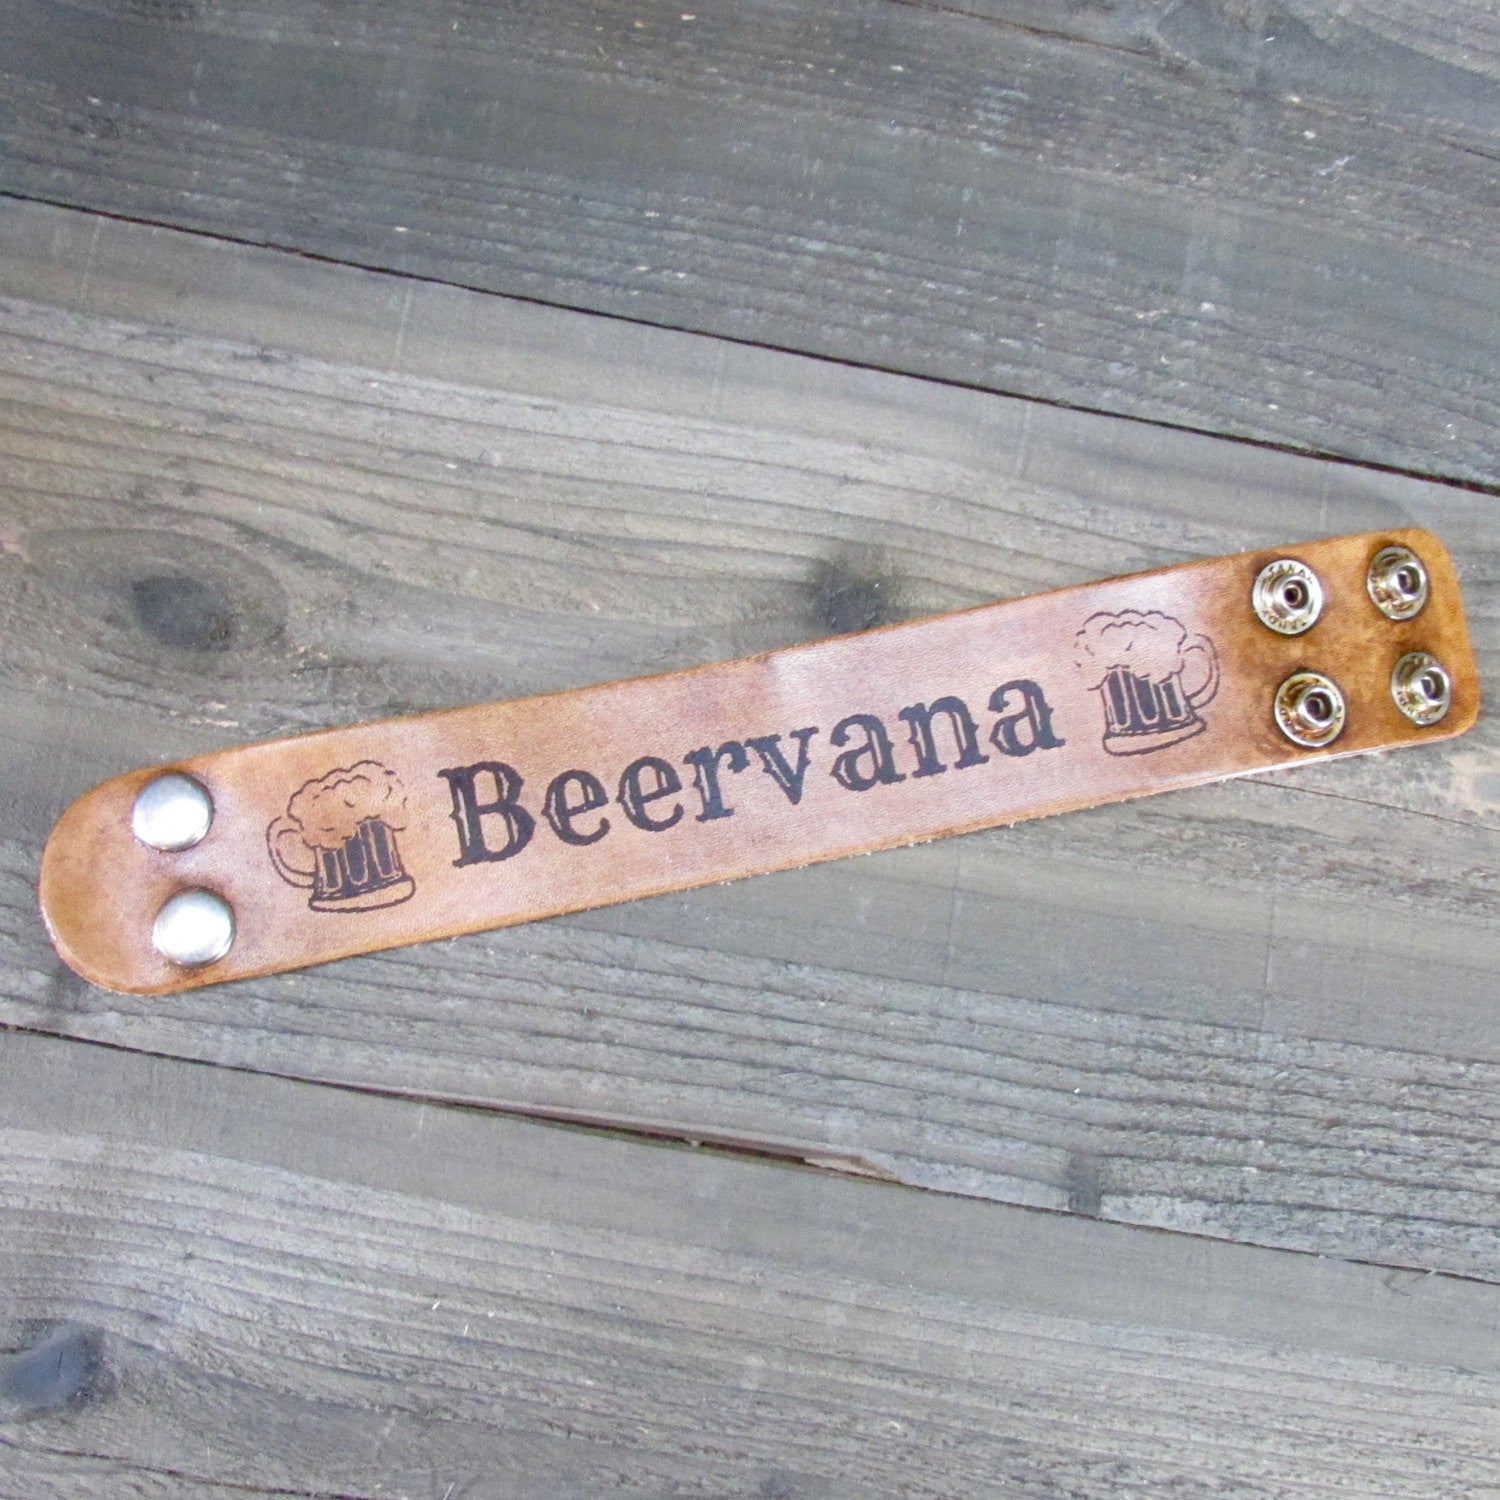 Beervana Cuff Bracelet - Laser Burned Adjustable Men Women Double Snap Closure